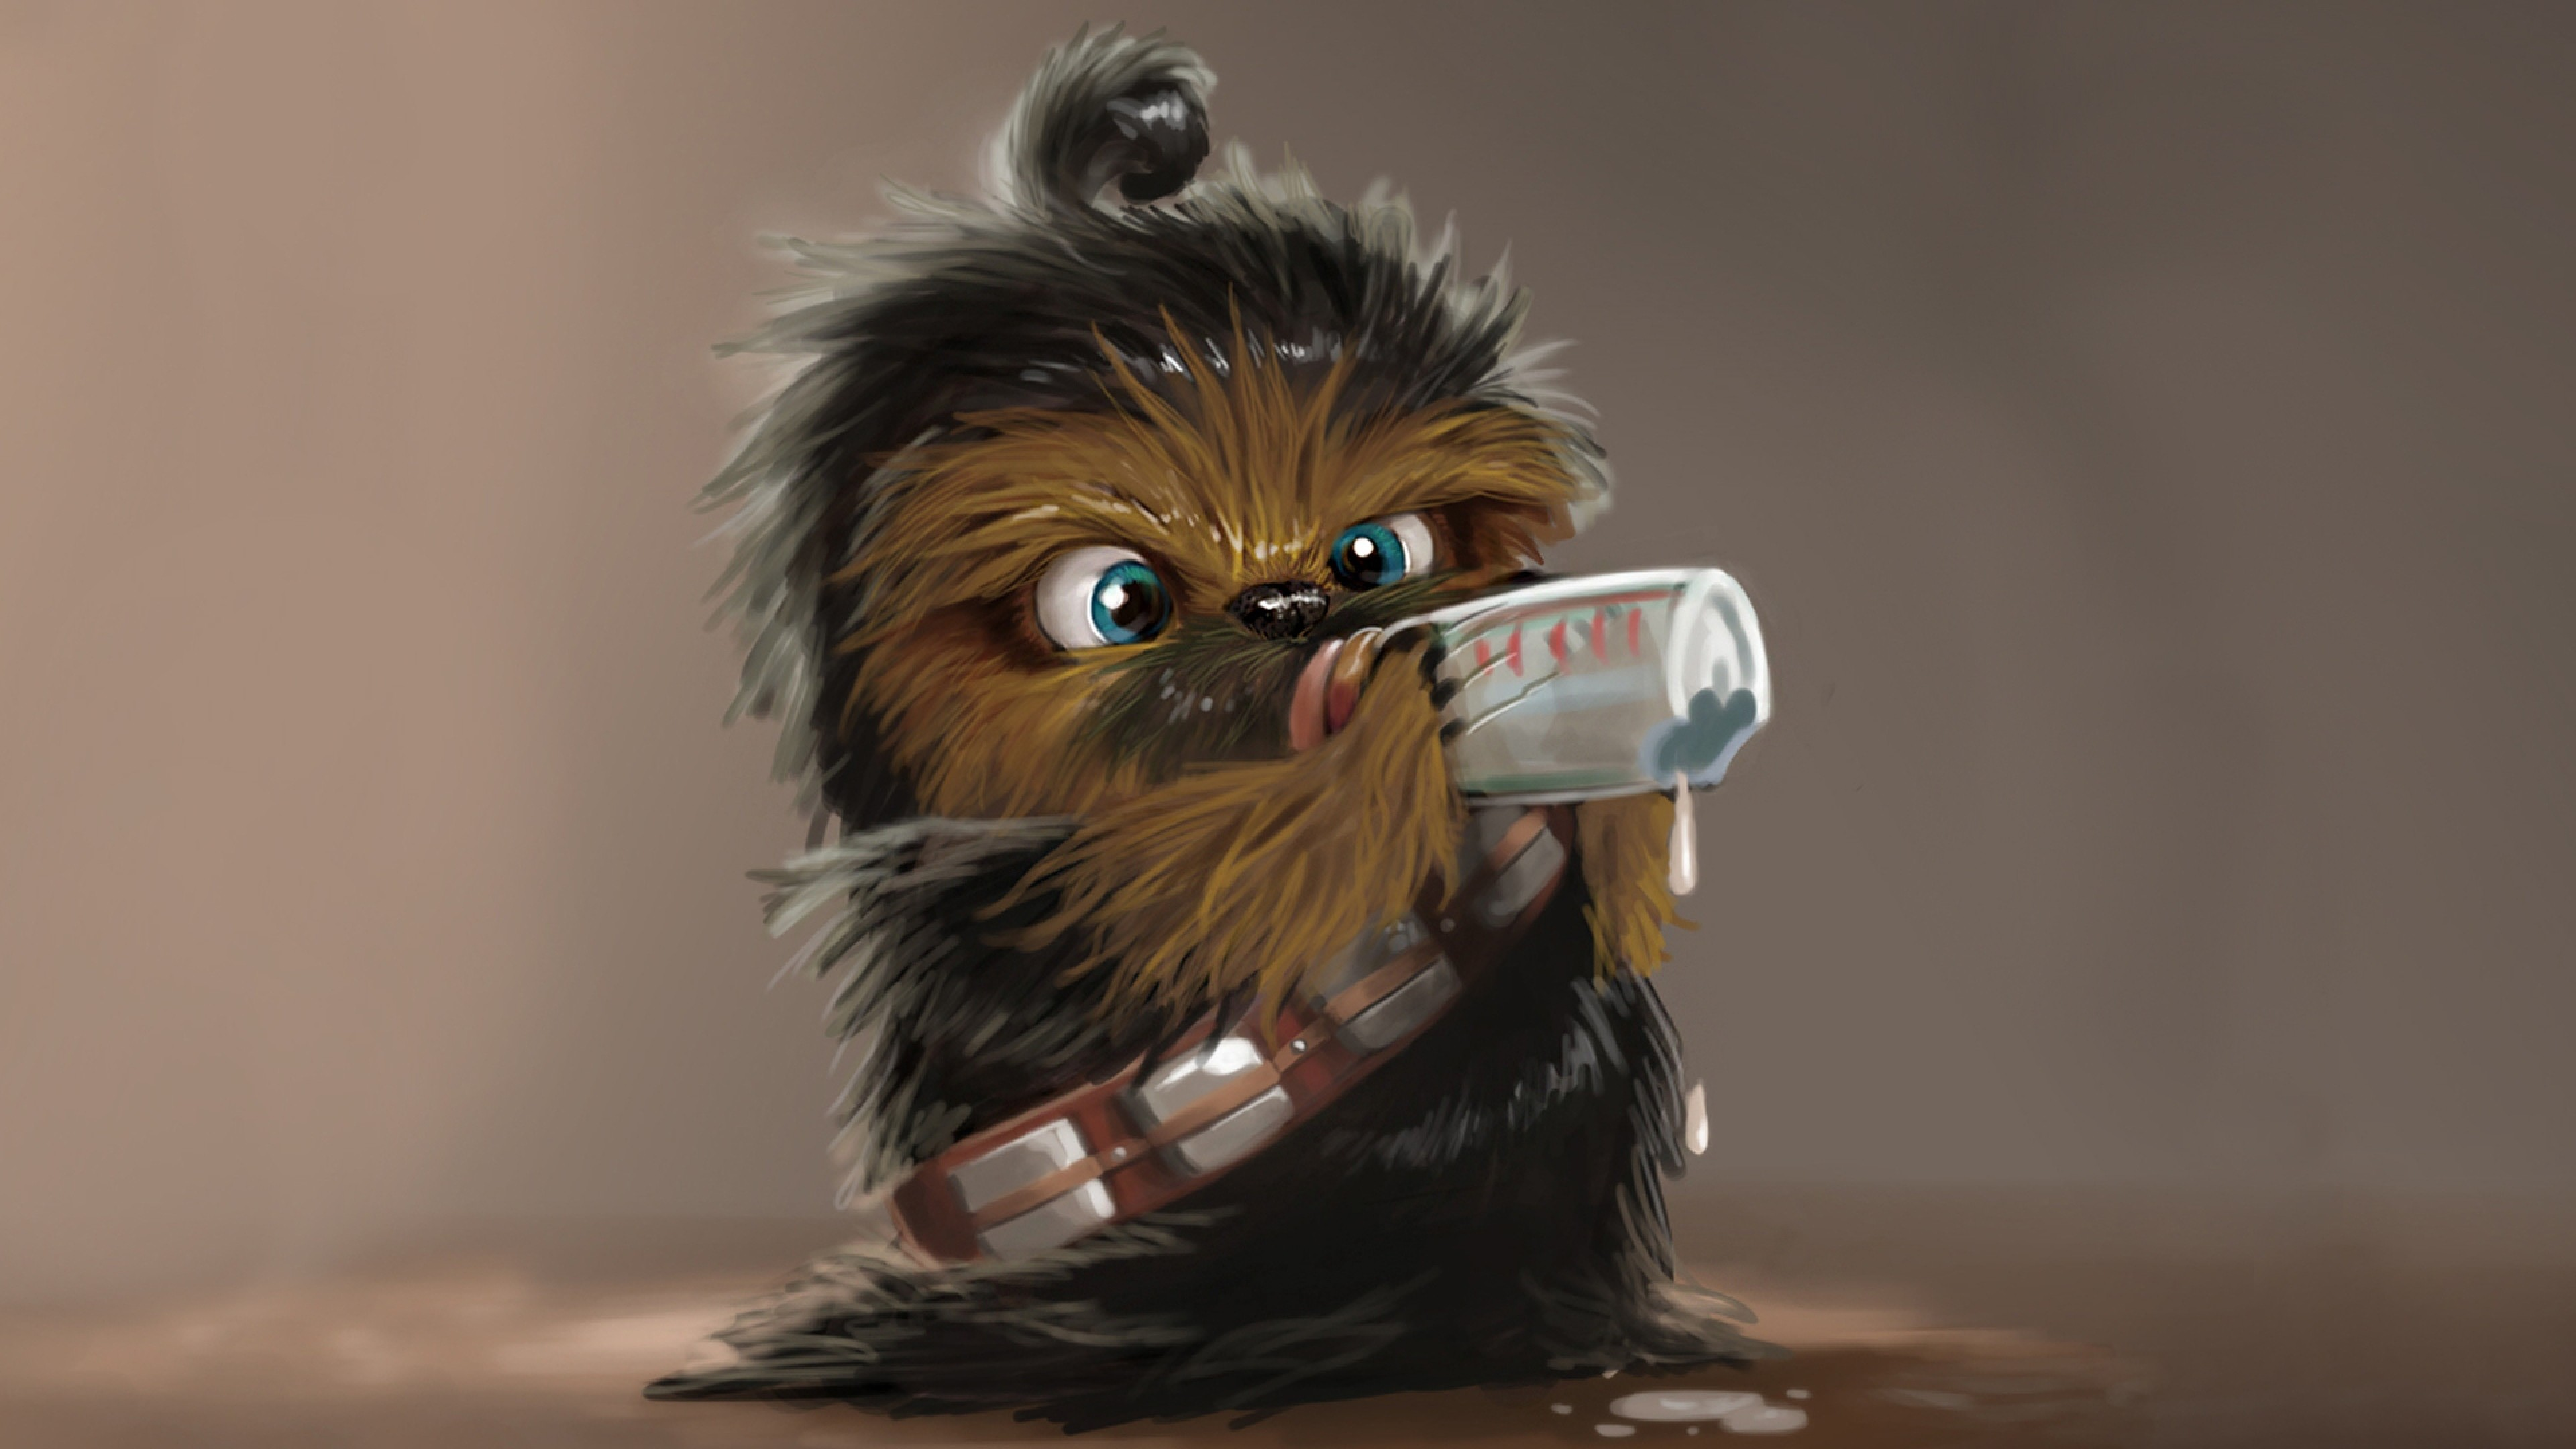 3840x2160 Star wars Chewbacca Drink Baby Wallpaper Background 4K Ultra HD